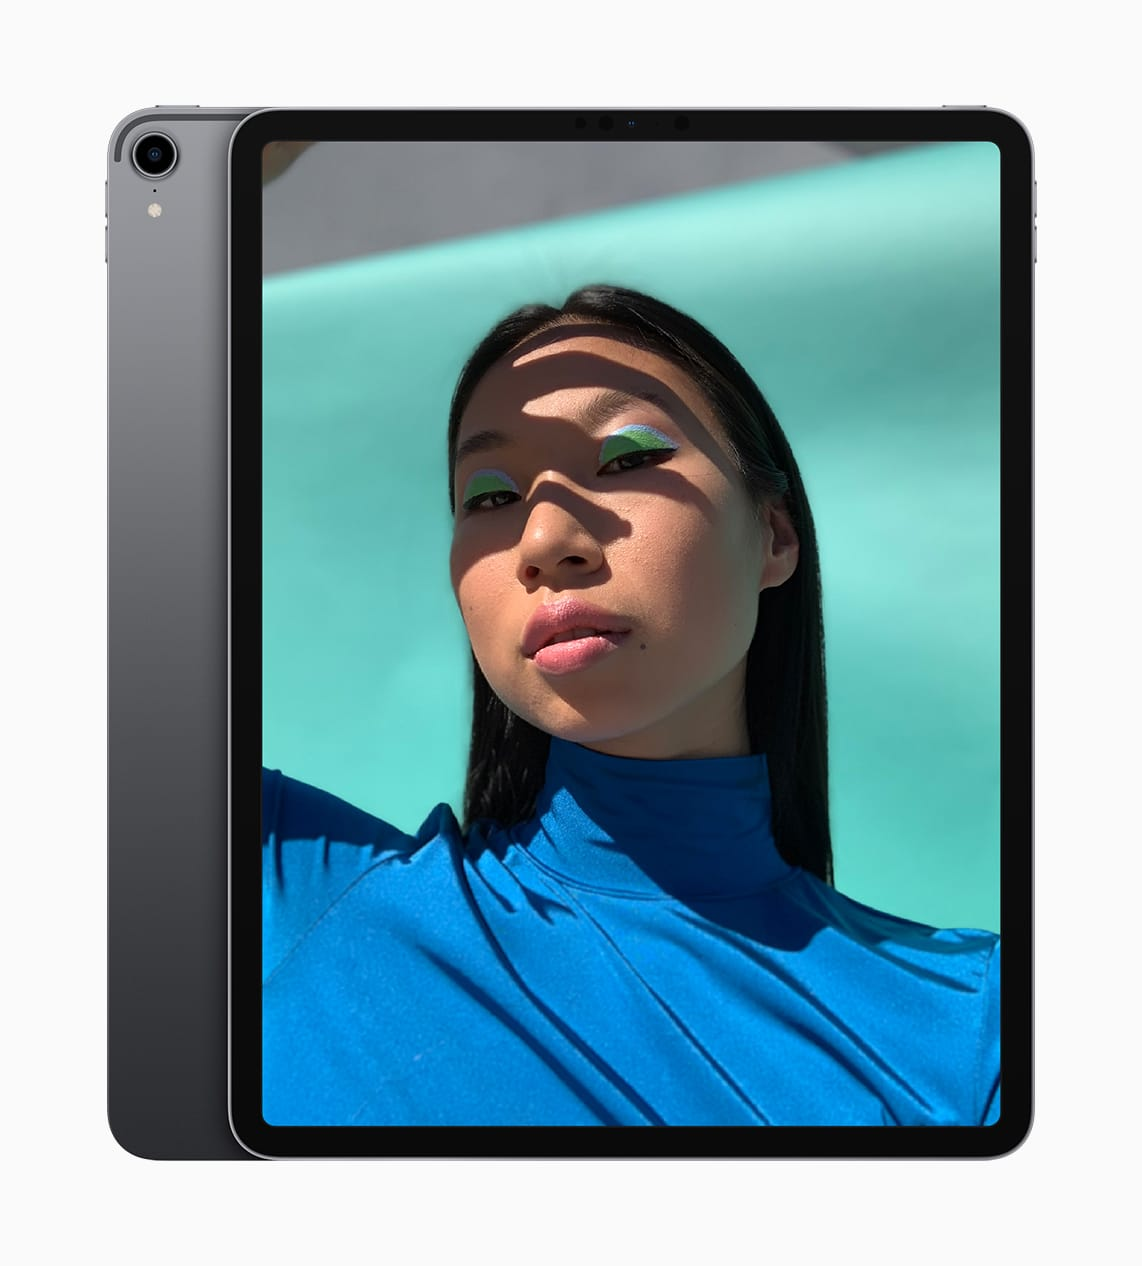 2018 iPad Pro is pricey, but well worth it.